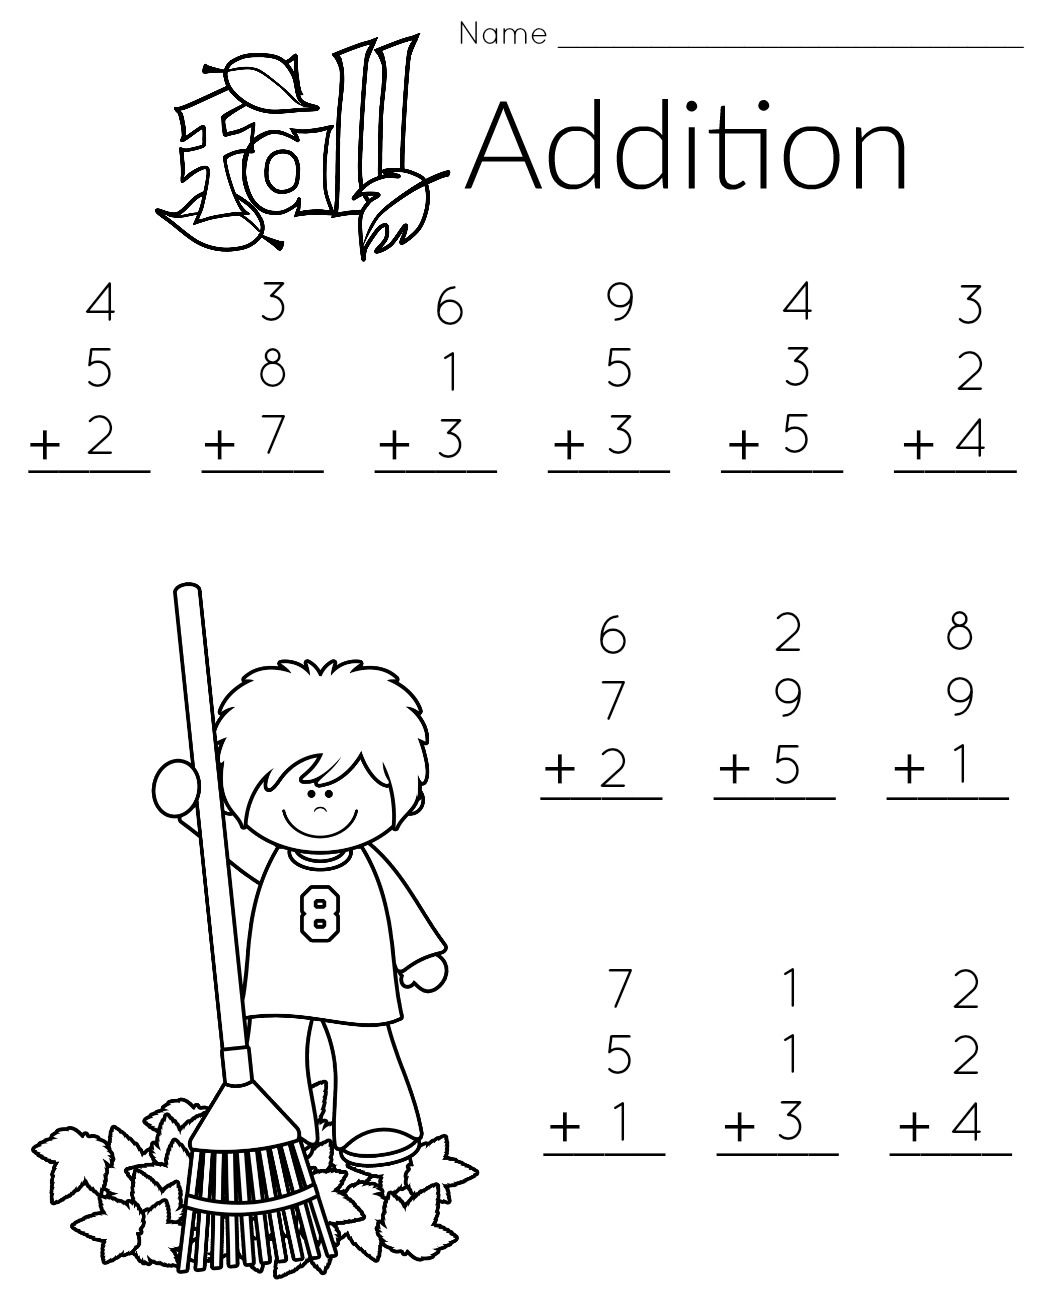 Simplicity image in printable 1st grade math